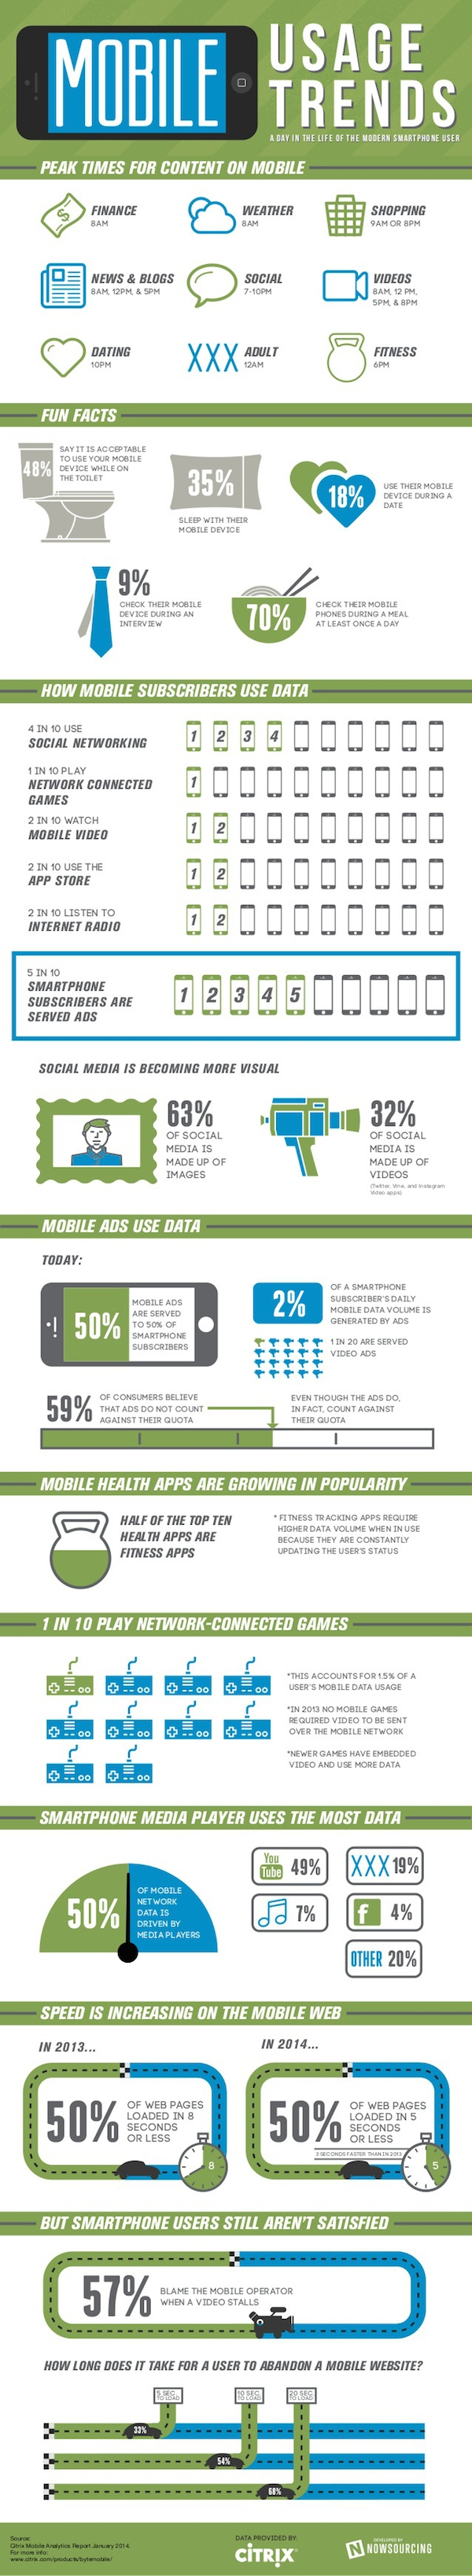 mobile-usage-infographic